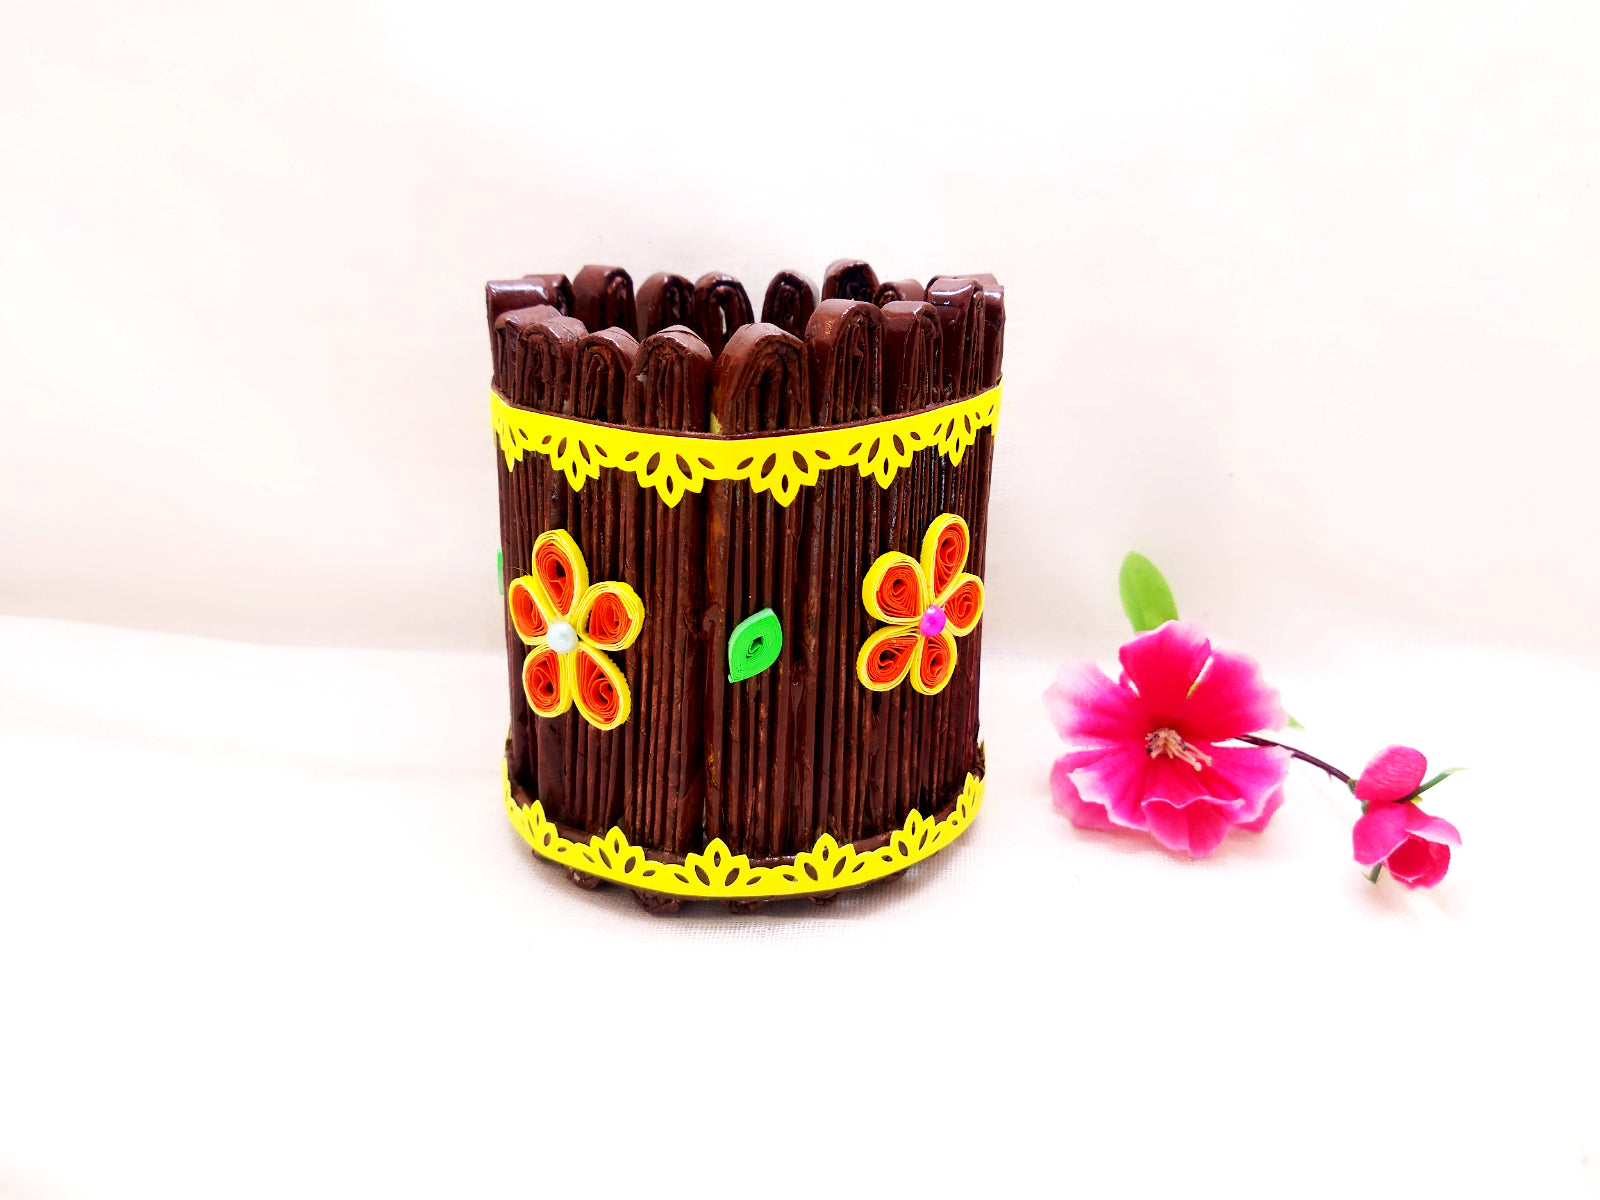 Pen Stand - News Paper Pen Holder with Quilling Art